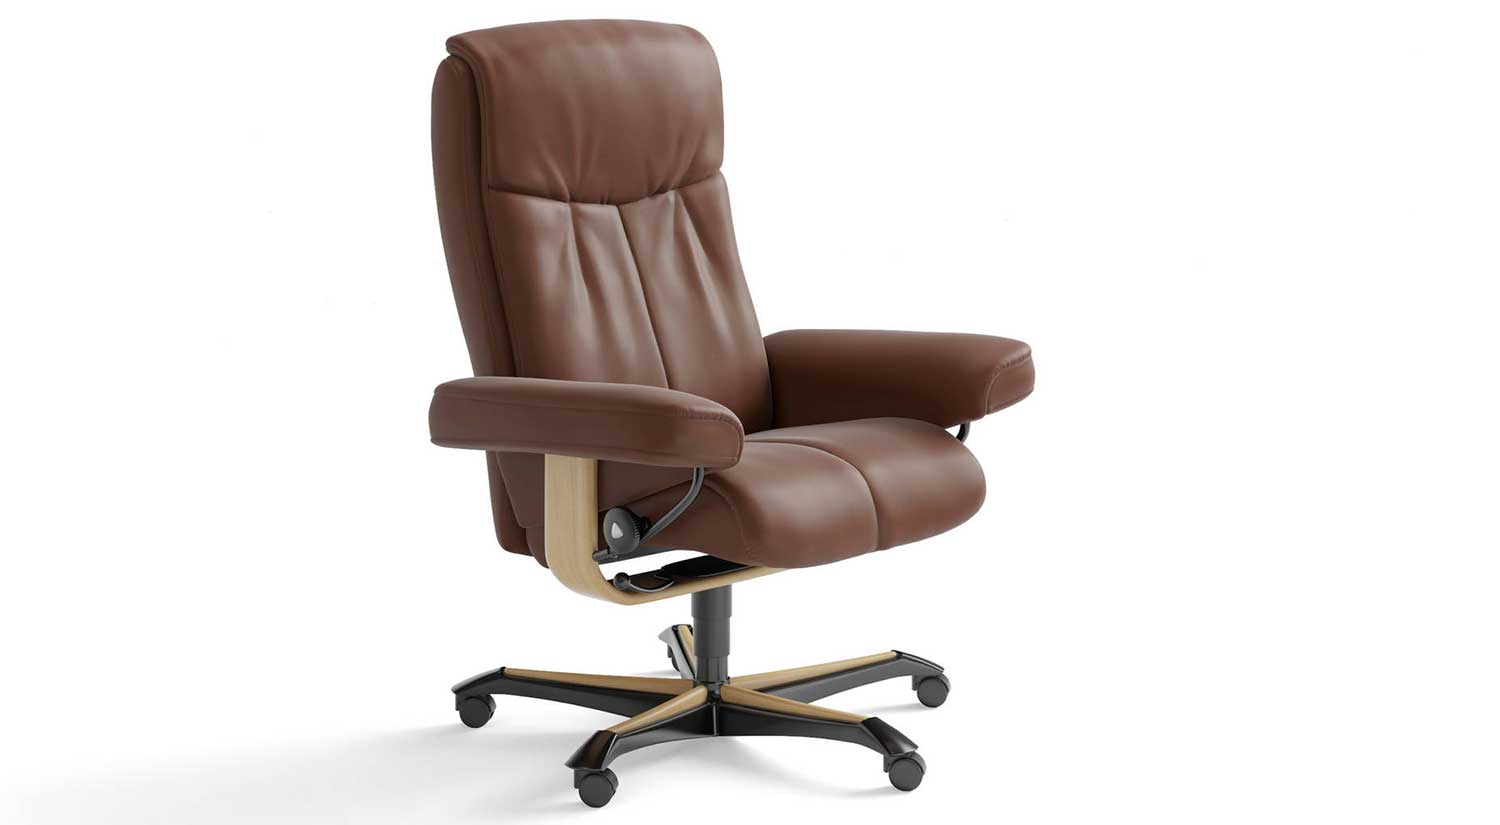 Stressless Office Chair Circle Furniture Peace Stressless Office Chair Desk